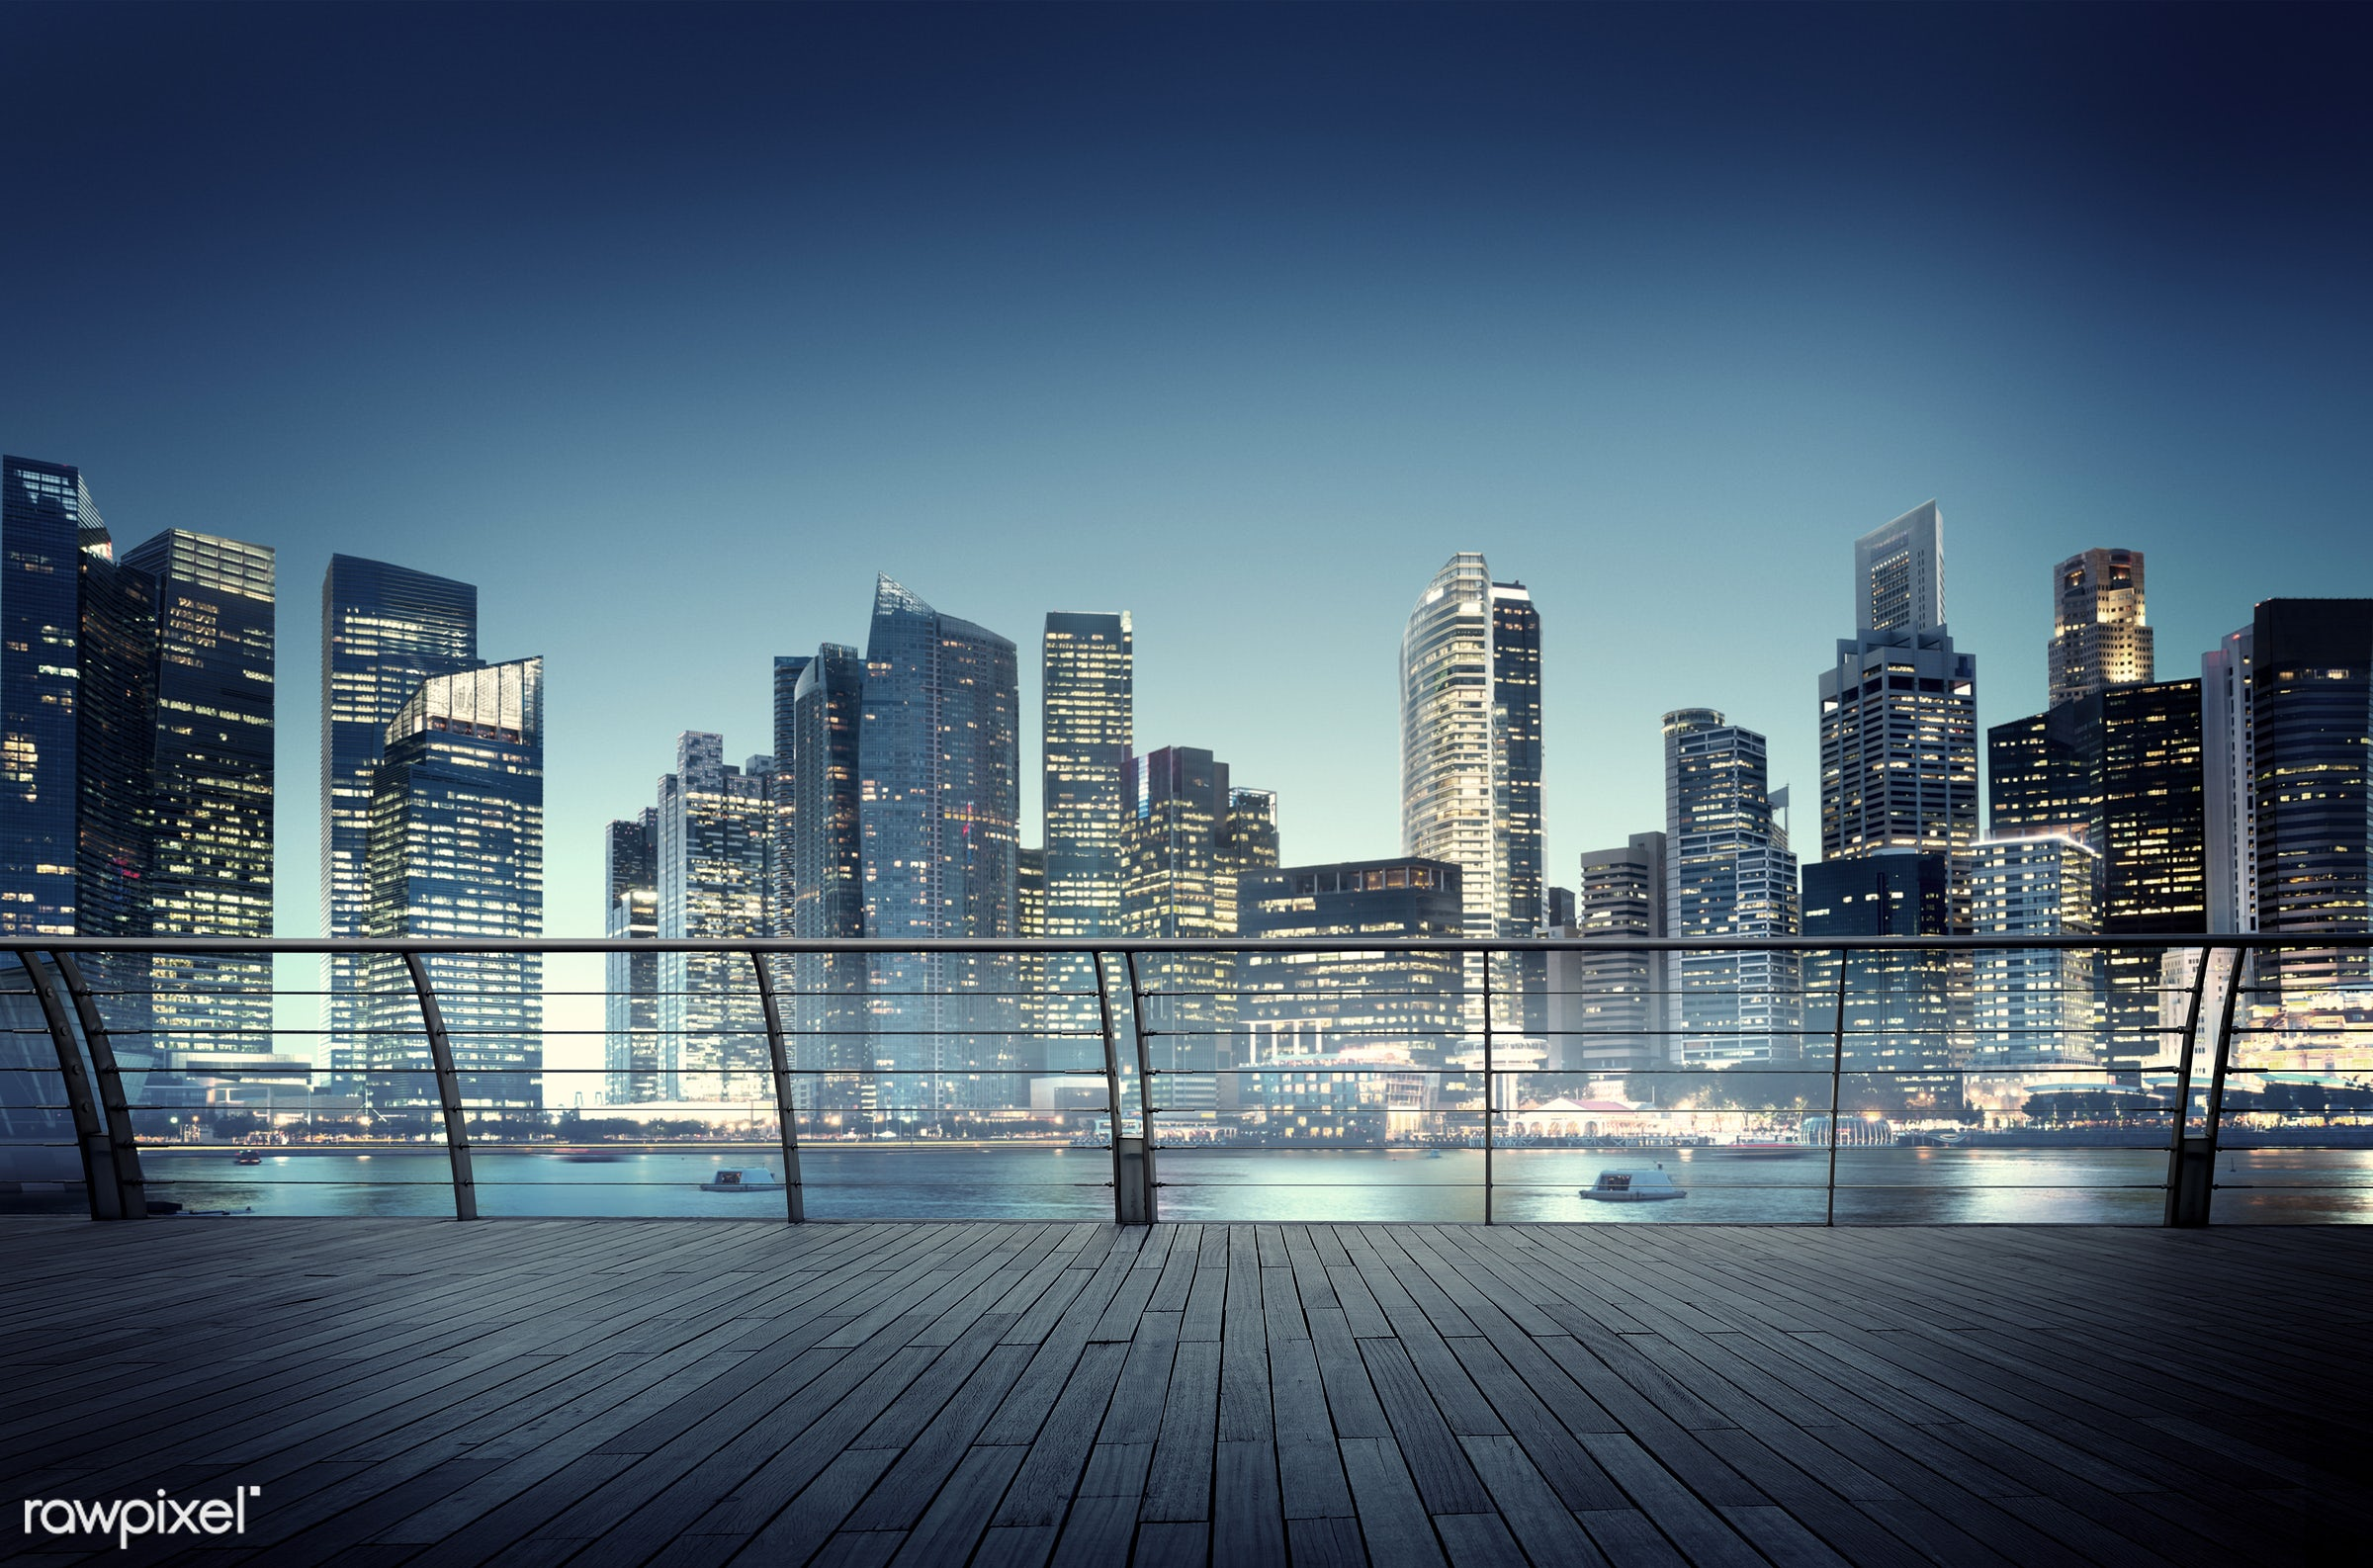 contemporary, bay view, building, city, city lights, cityscape, modern, night, nightlife, office building, outdoors, scenic...